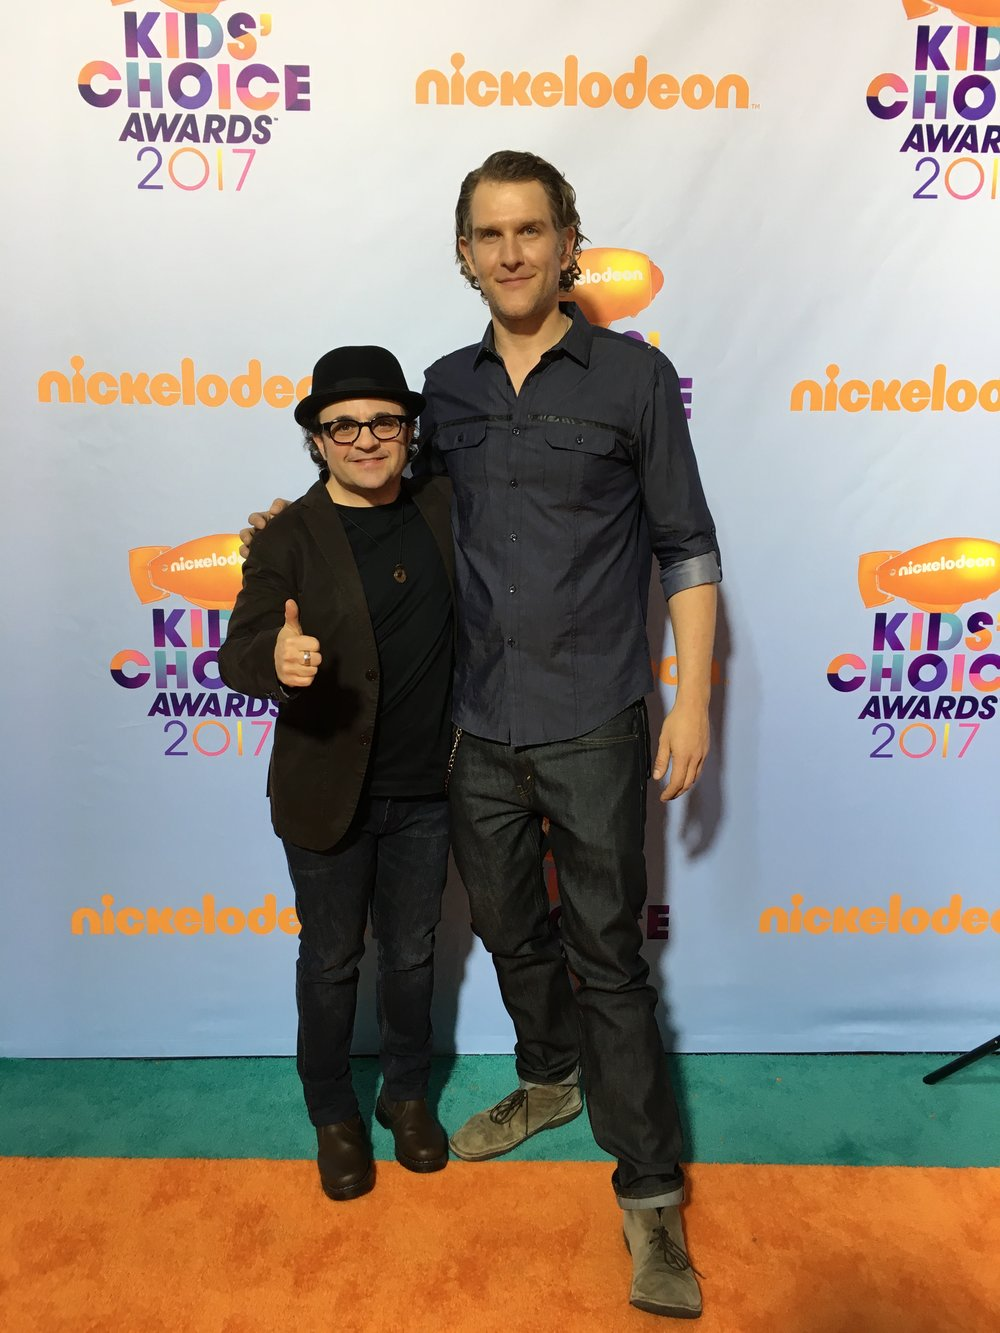 Orange carpet Kids Choice Awards 2017 with the talented and charming Michael Cohen.